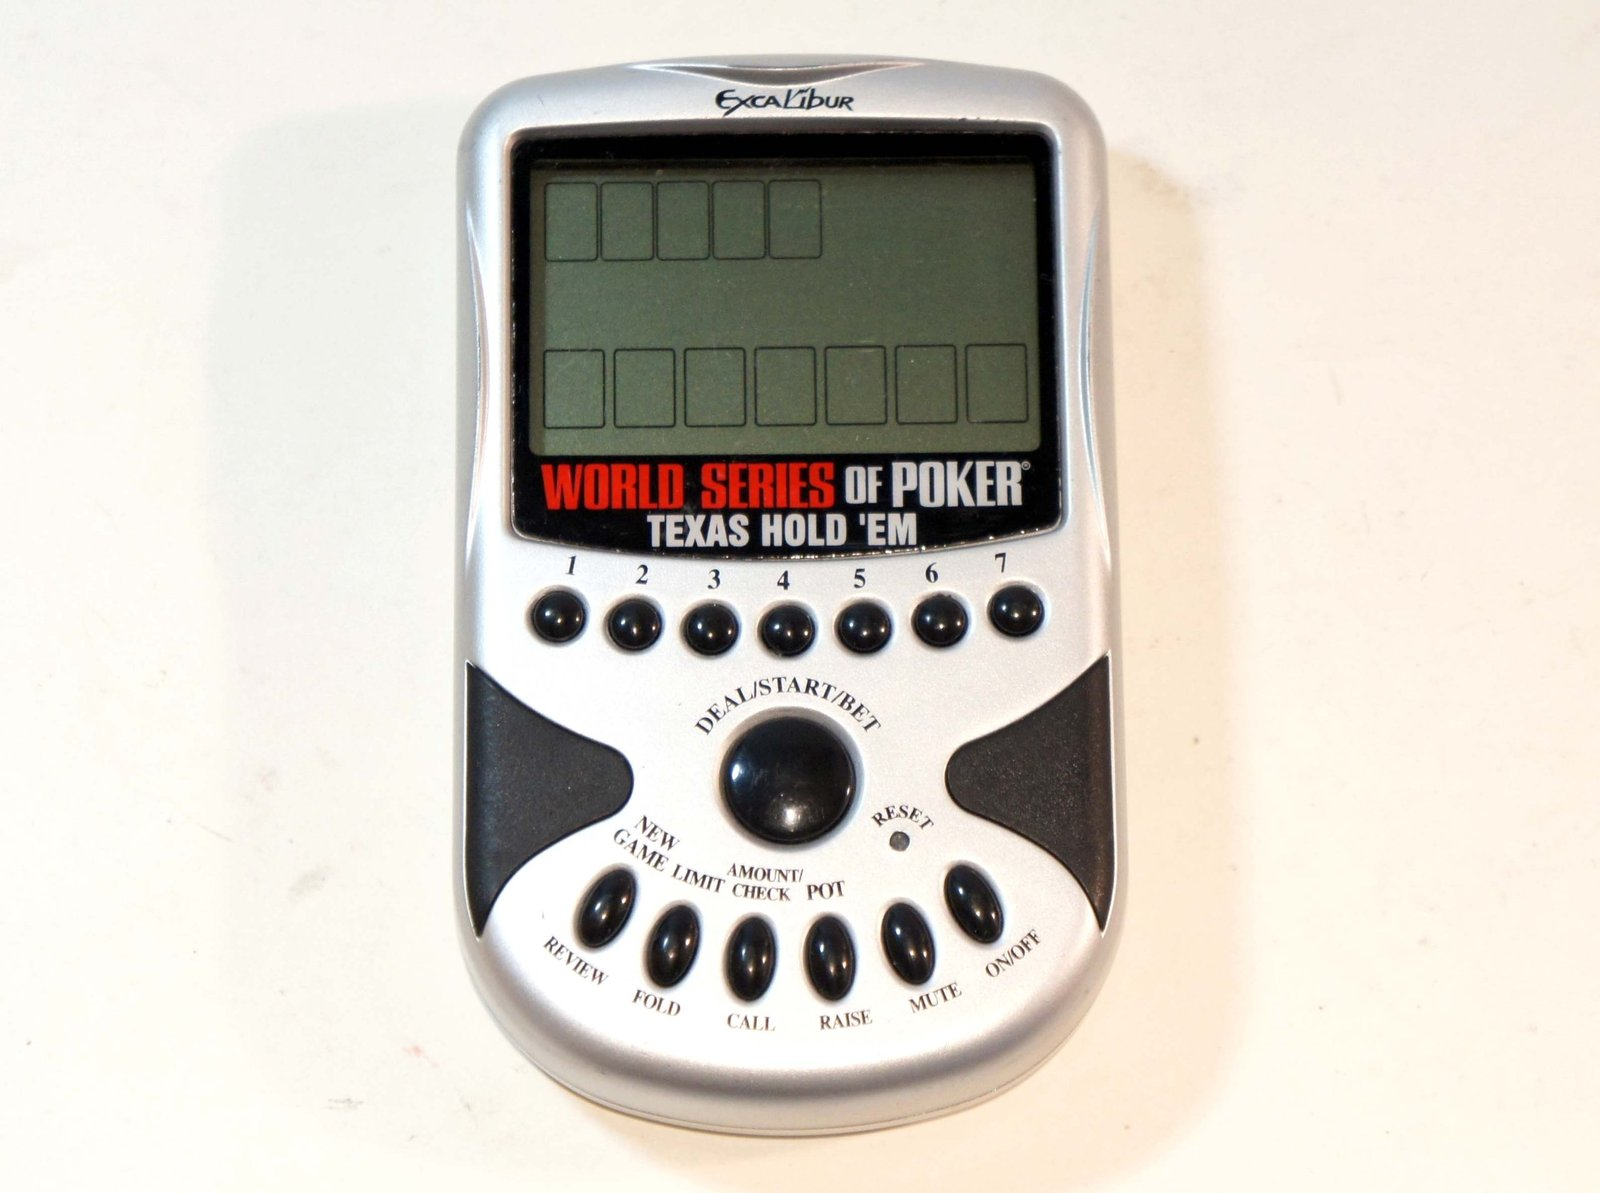 World Series of Poker Electronic Texas Hold 'em Poker Handheld, by Excalibur